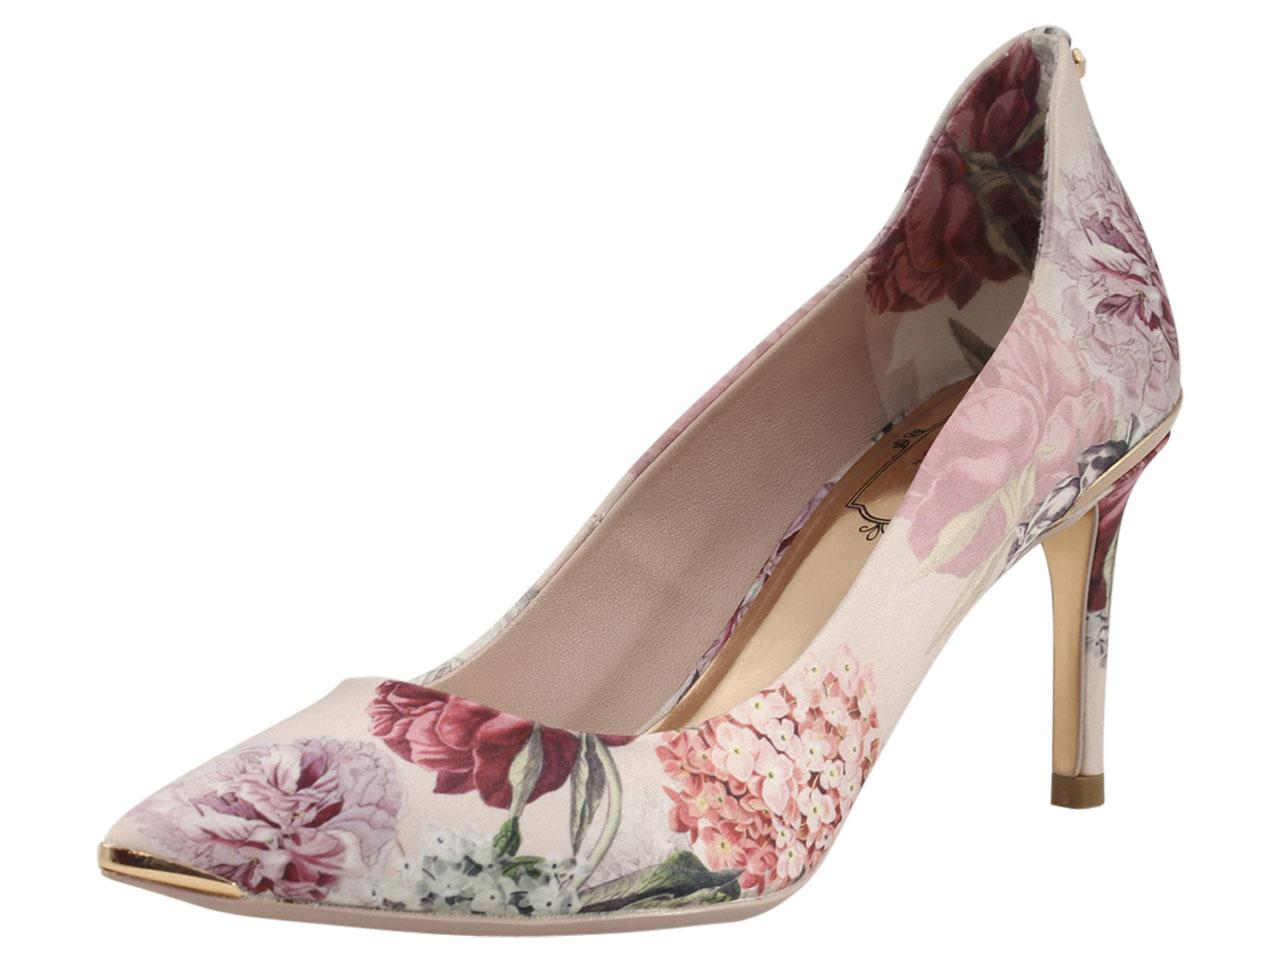 cbca2f0f7de251 Ted Baker Women s Vyixyn-P-2 Pumps Heels Shoes